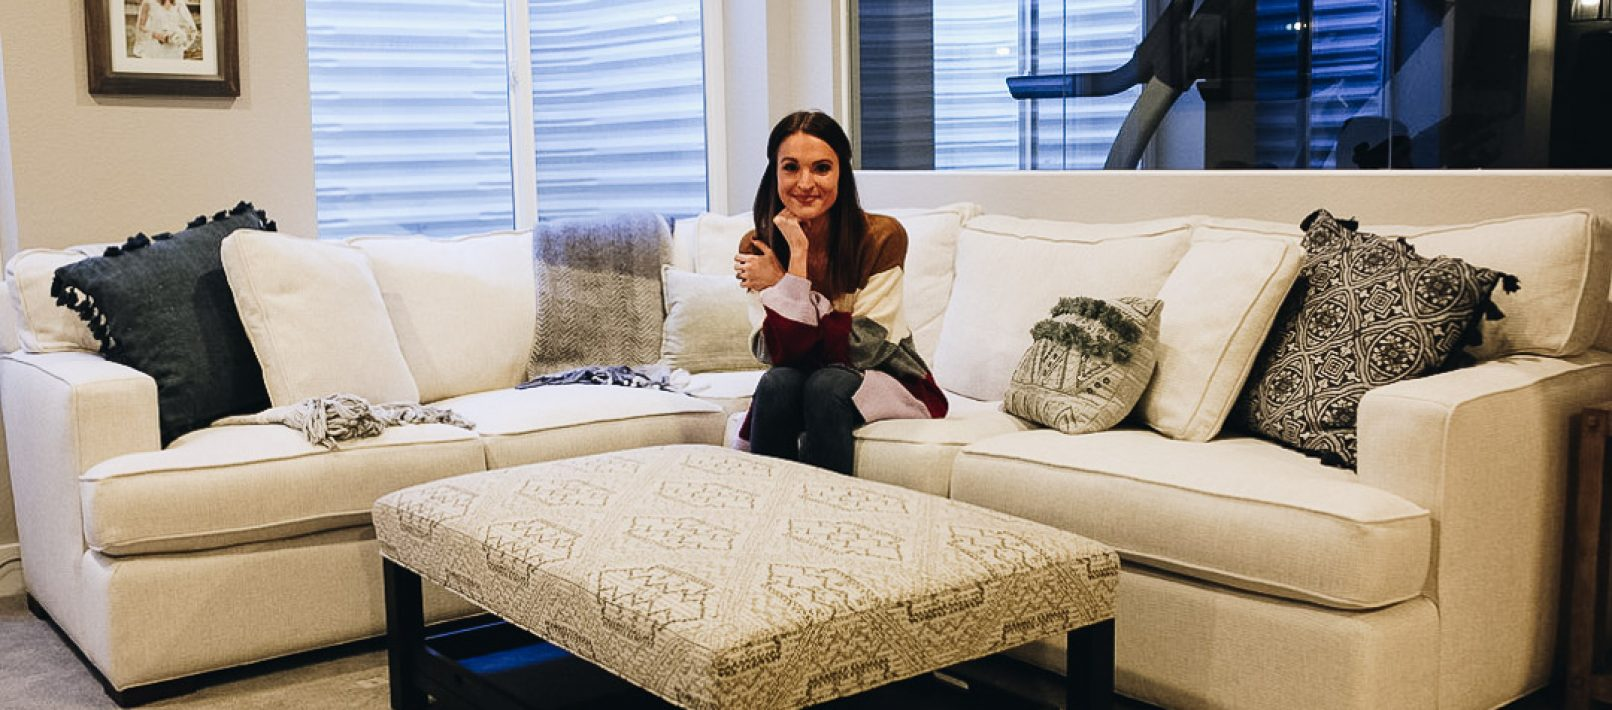 Arhaus Sectional Ottoman Review